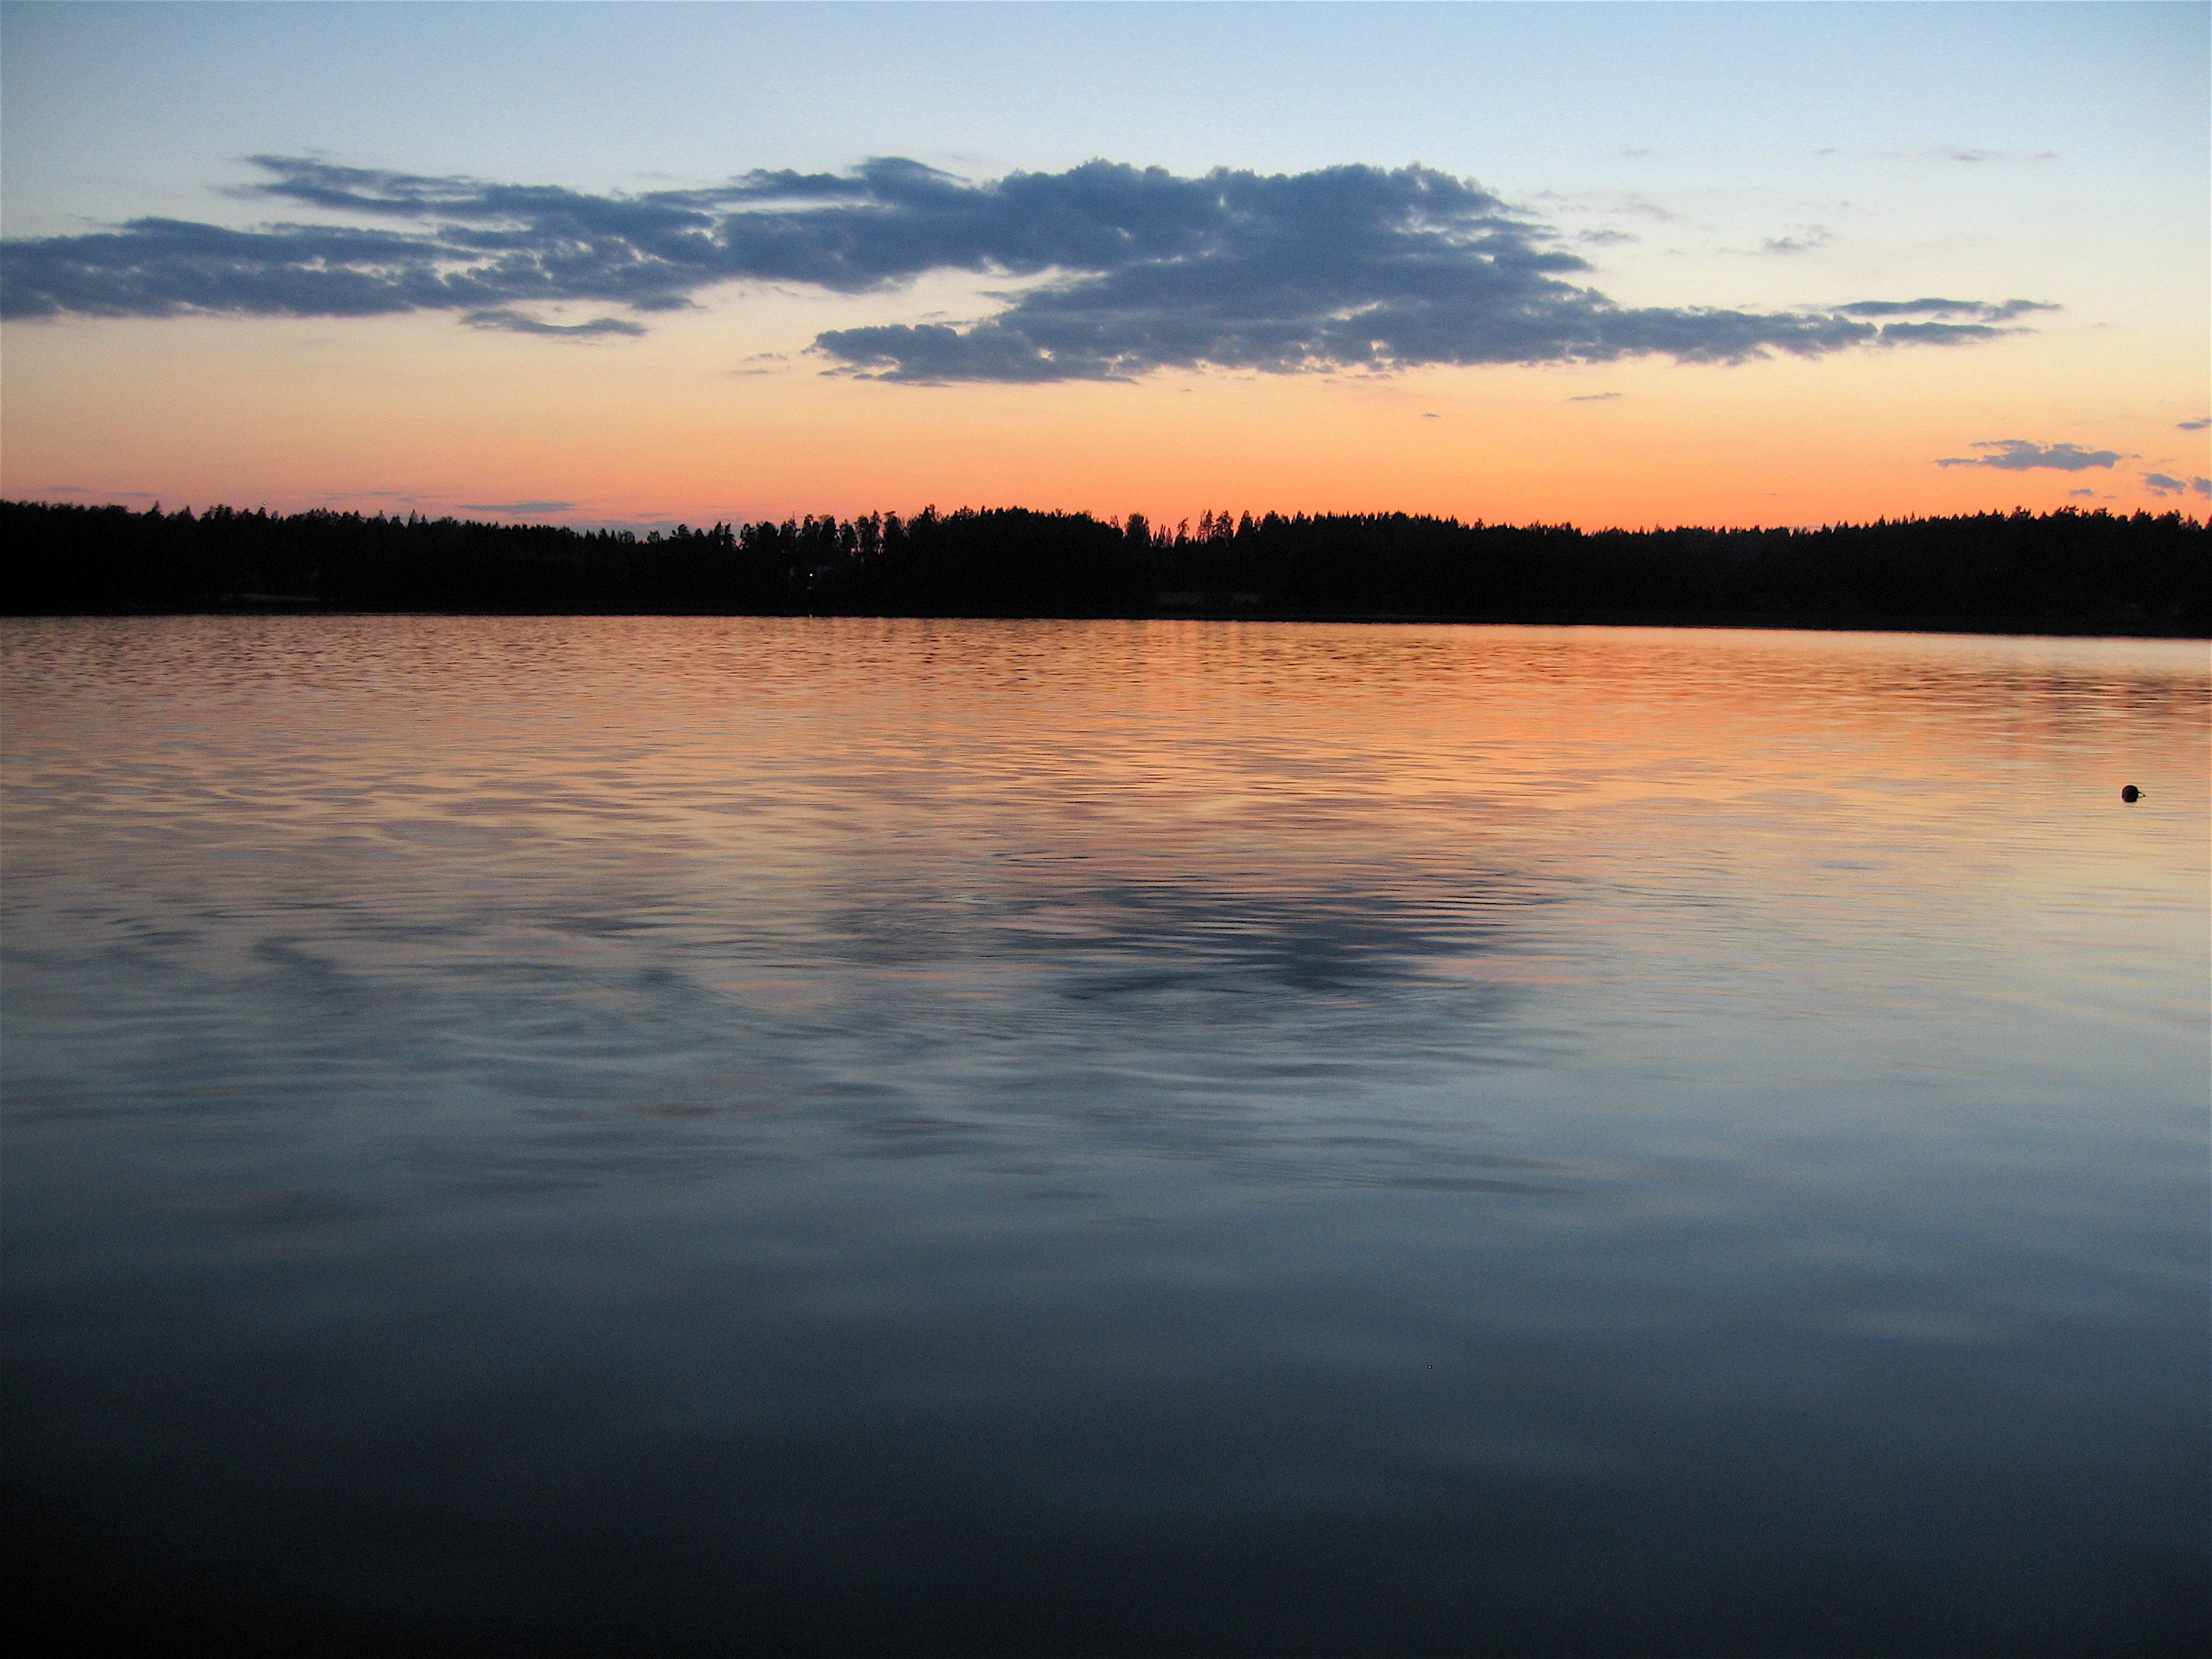 after sunset author soini hannu